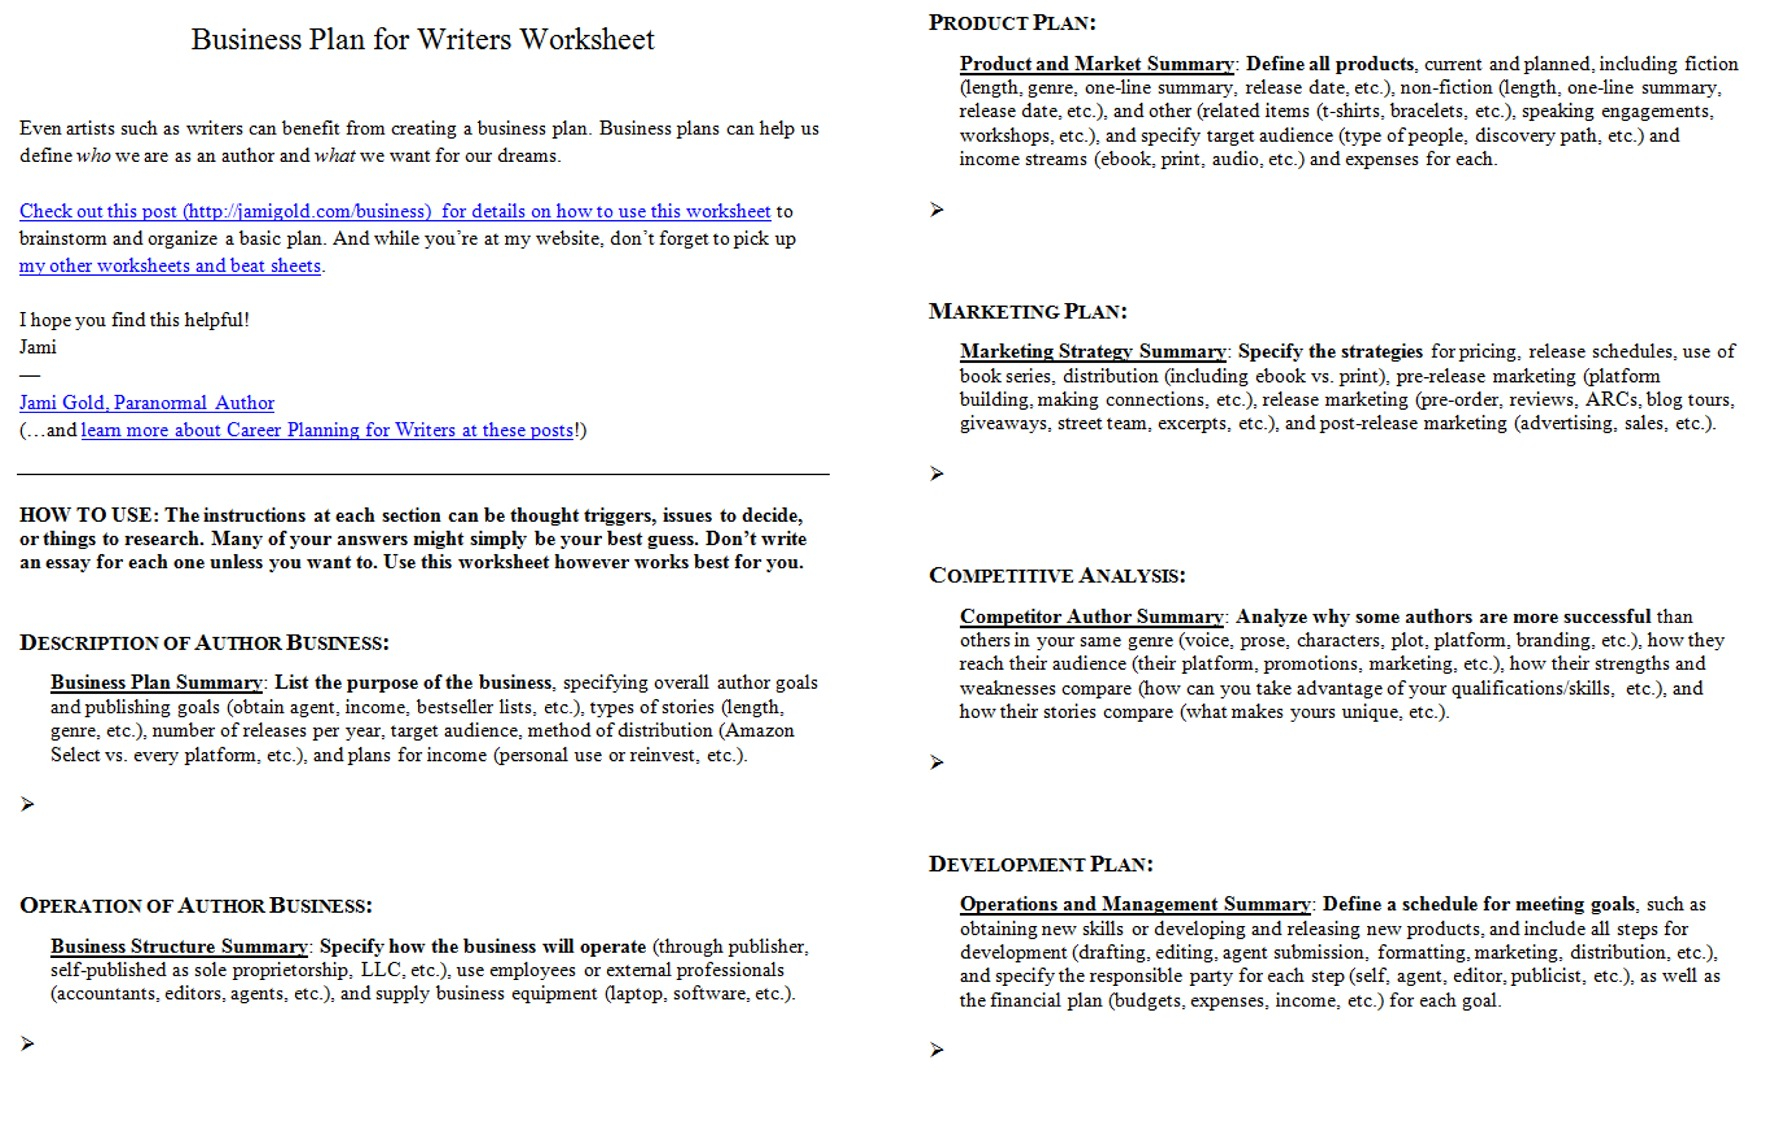 Weirdmailus  Fascinating Worksheets For Writers  Jami Gold Paranormal Author With Fascinating Screen Shot Of Both Pages Of The Business Plan For Writers Worksheet With Astounding Number Sentence Worksheets Nd Grade Also Math Fact Families Worksheets In Addition Ad Word Family Worksheets And Common Core Worksheets Reading As Well As Massachusetts Child Support Worksheet Additionally Free Reading Comprehension Worksheets Th Grade From Jamigoldcom With Weirdmailus  Fascinating Worksheets For Writers  Jami Gold Paranormal Author With Astounding Screen Shot Of Both Pages Of The Business Plan For Writers Worksheet And Fascinating Number Sentence Worksheets Nd Grade Also Math Fact Families Worksheets In Addition Ad Word Family Worksheets From Jamigoldcom